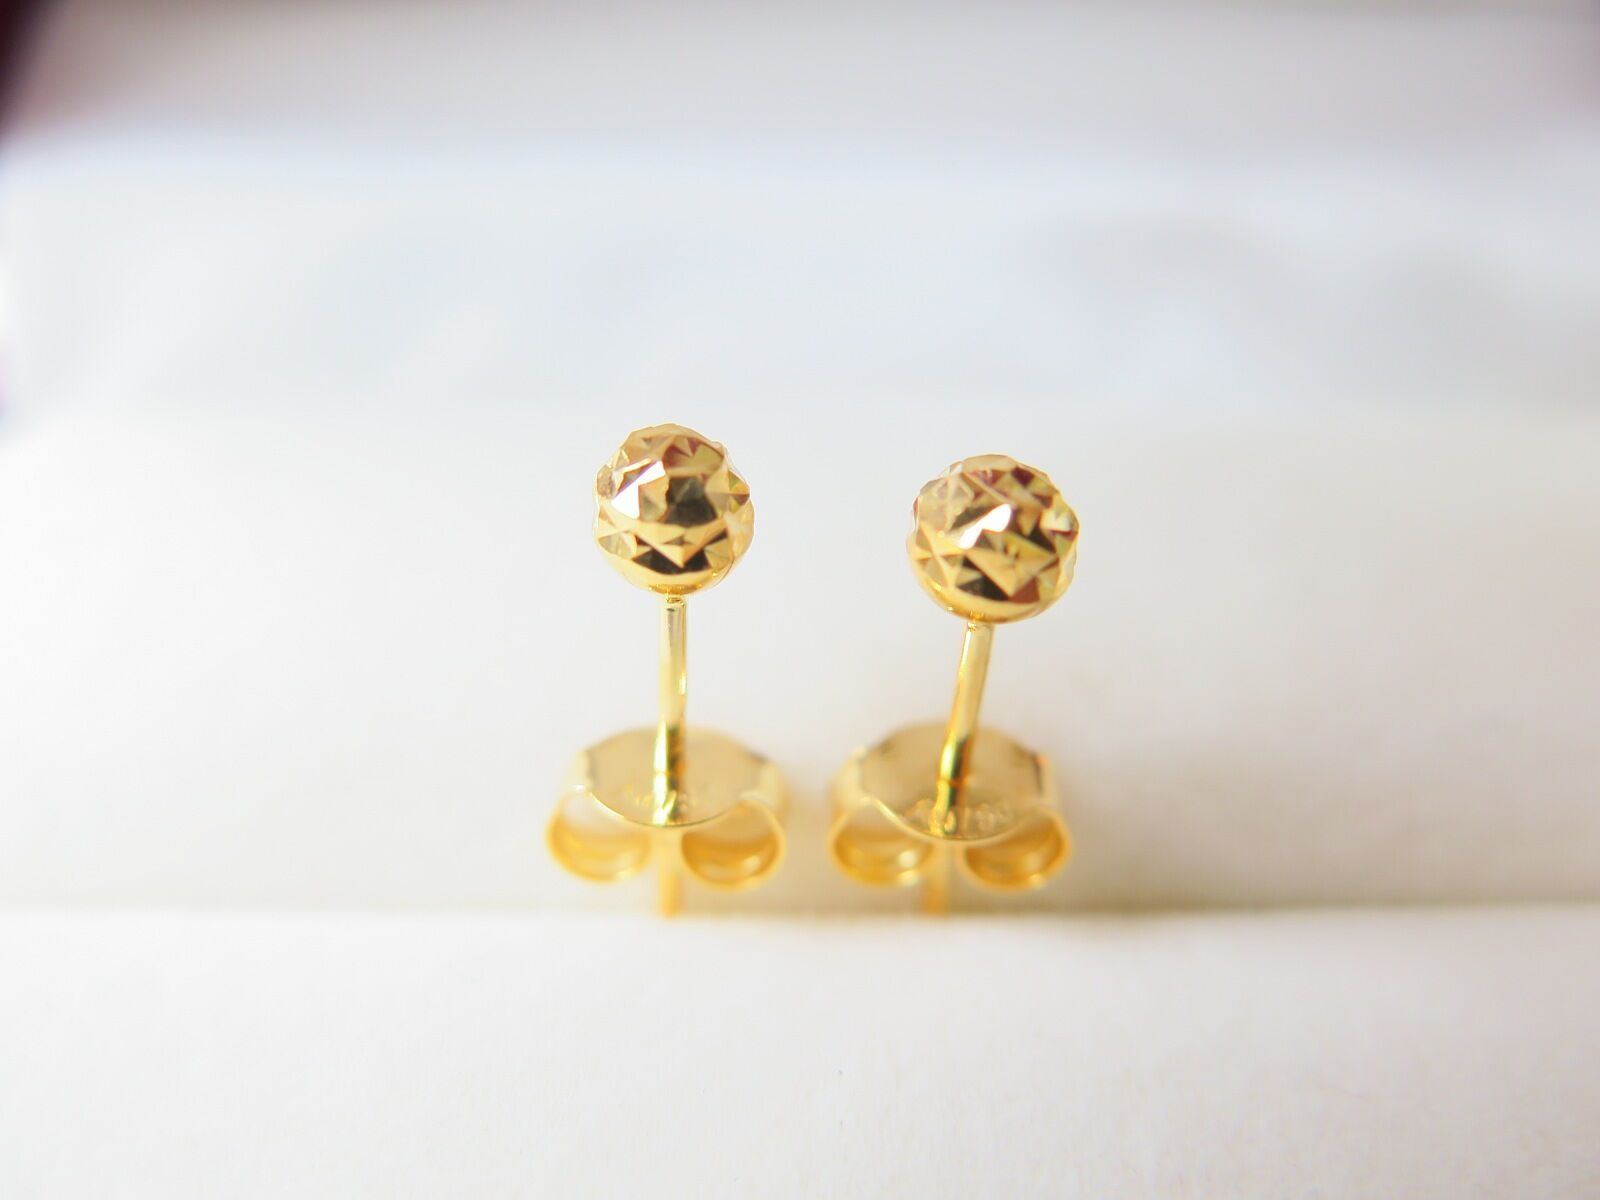 Best Gift 18K Yellow gold 4mm Carved Ball Stud Earrings Au750